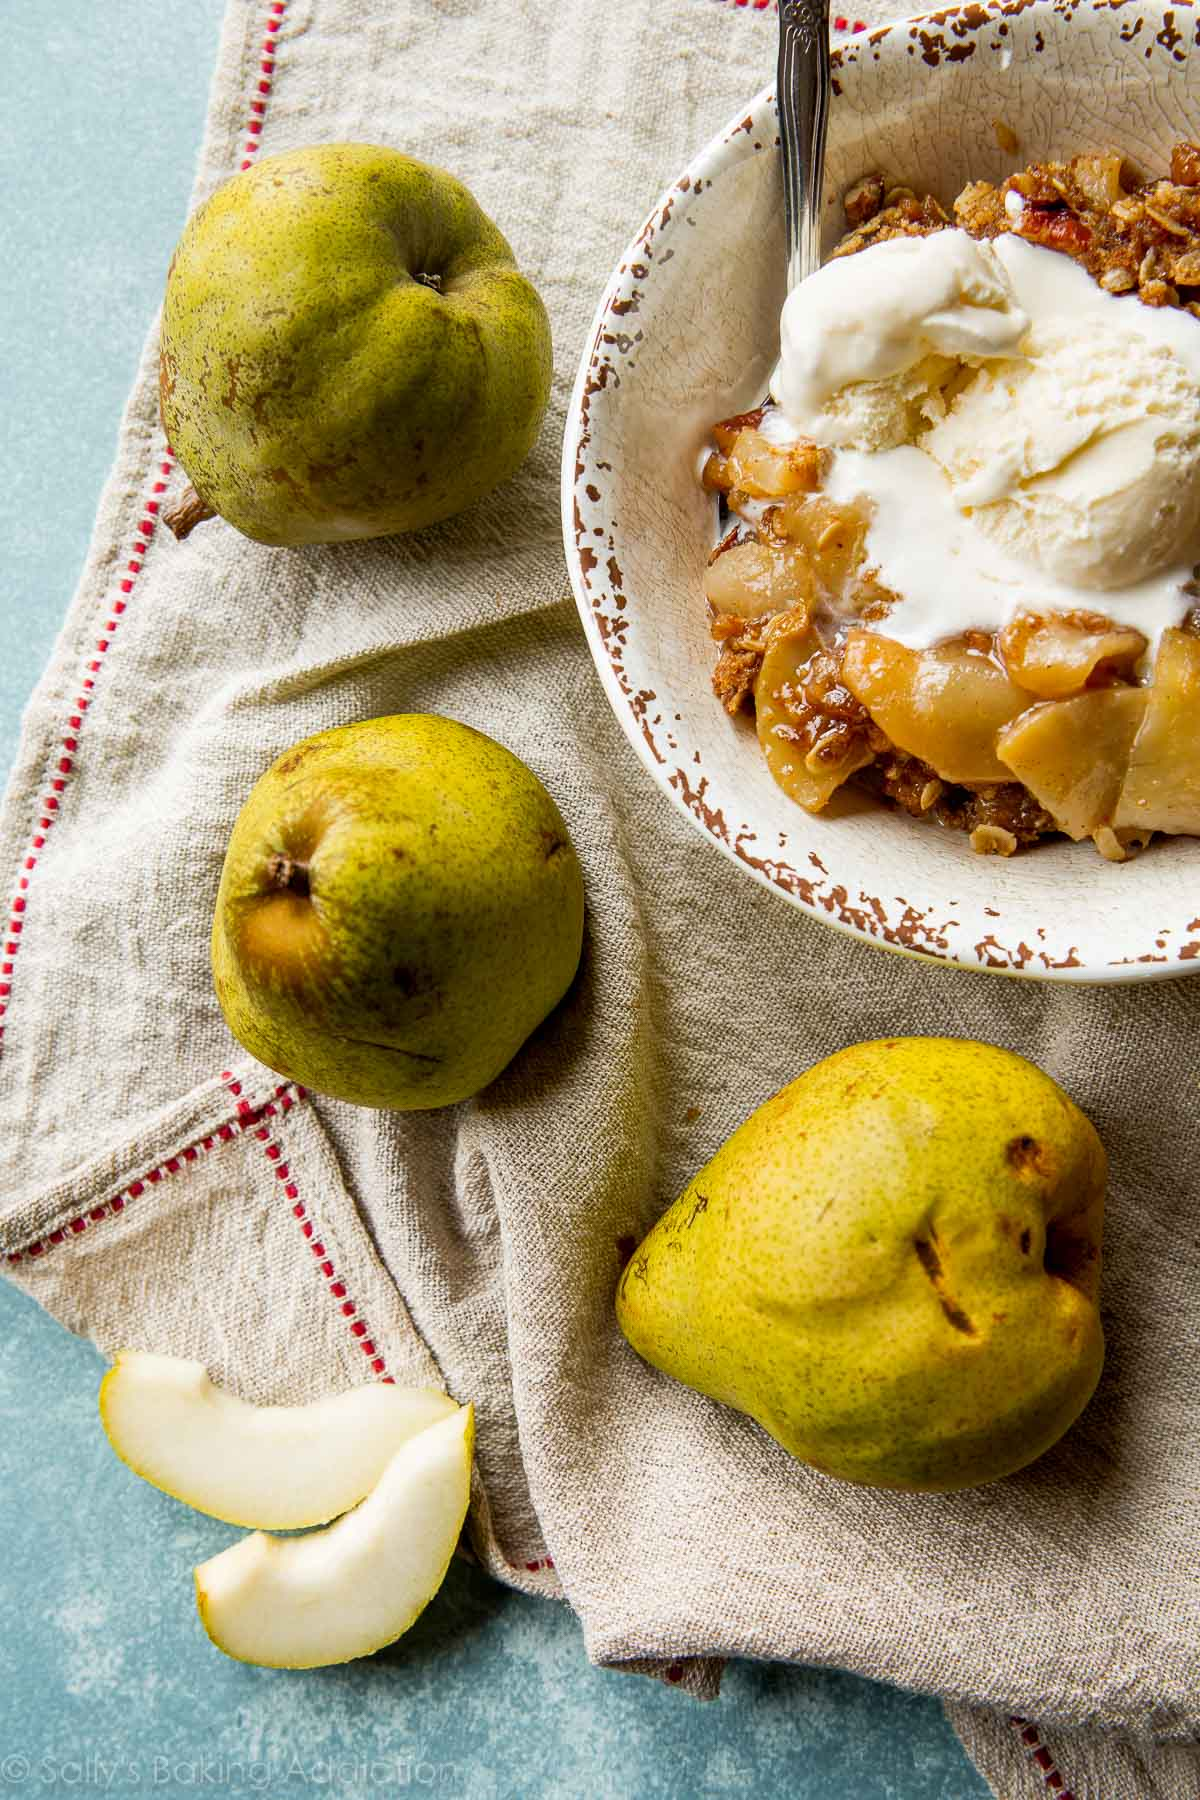 Brown sugar, cinnamon, oats, and fresh fruit come together in this buttery and irresistible apple pear crisp! Recipe on sallysbakingaddiction.com